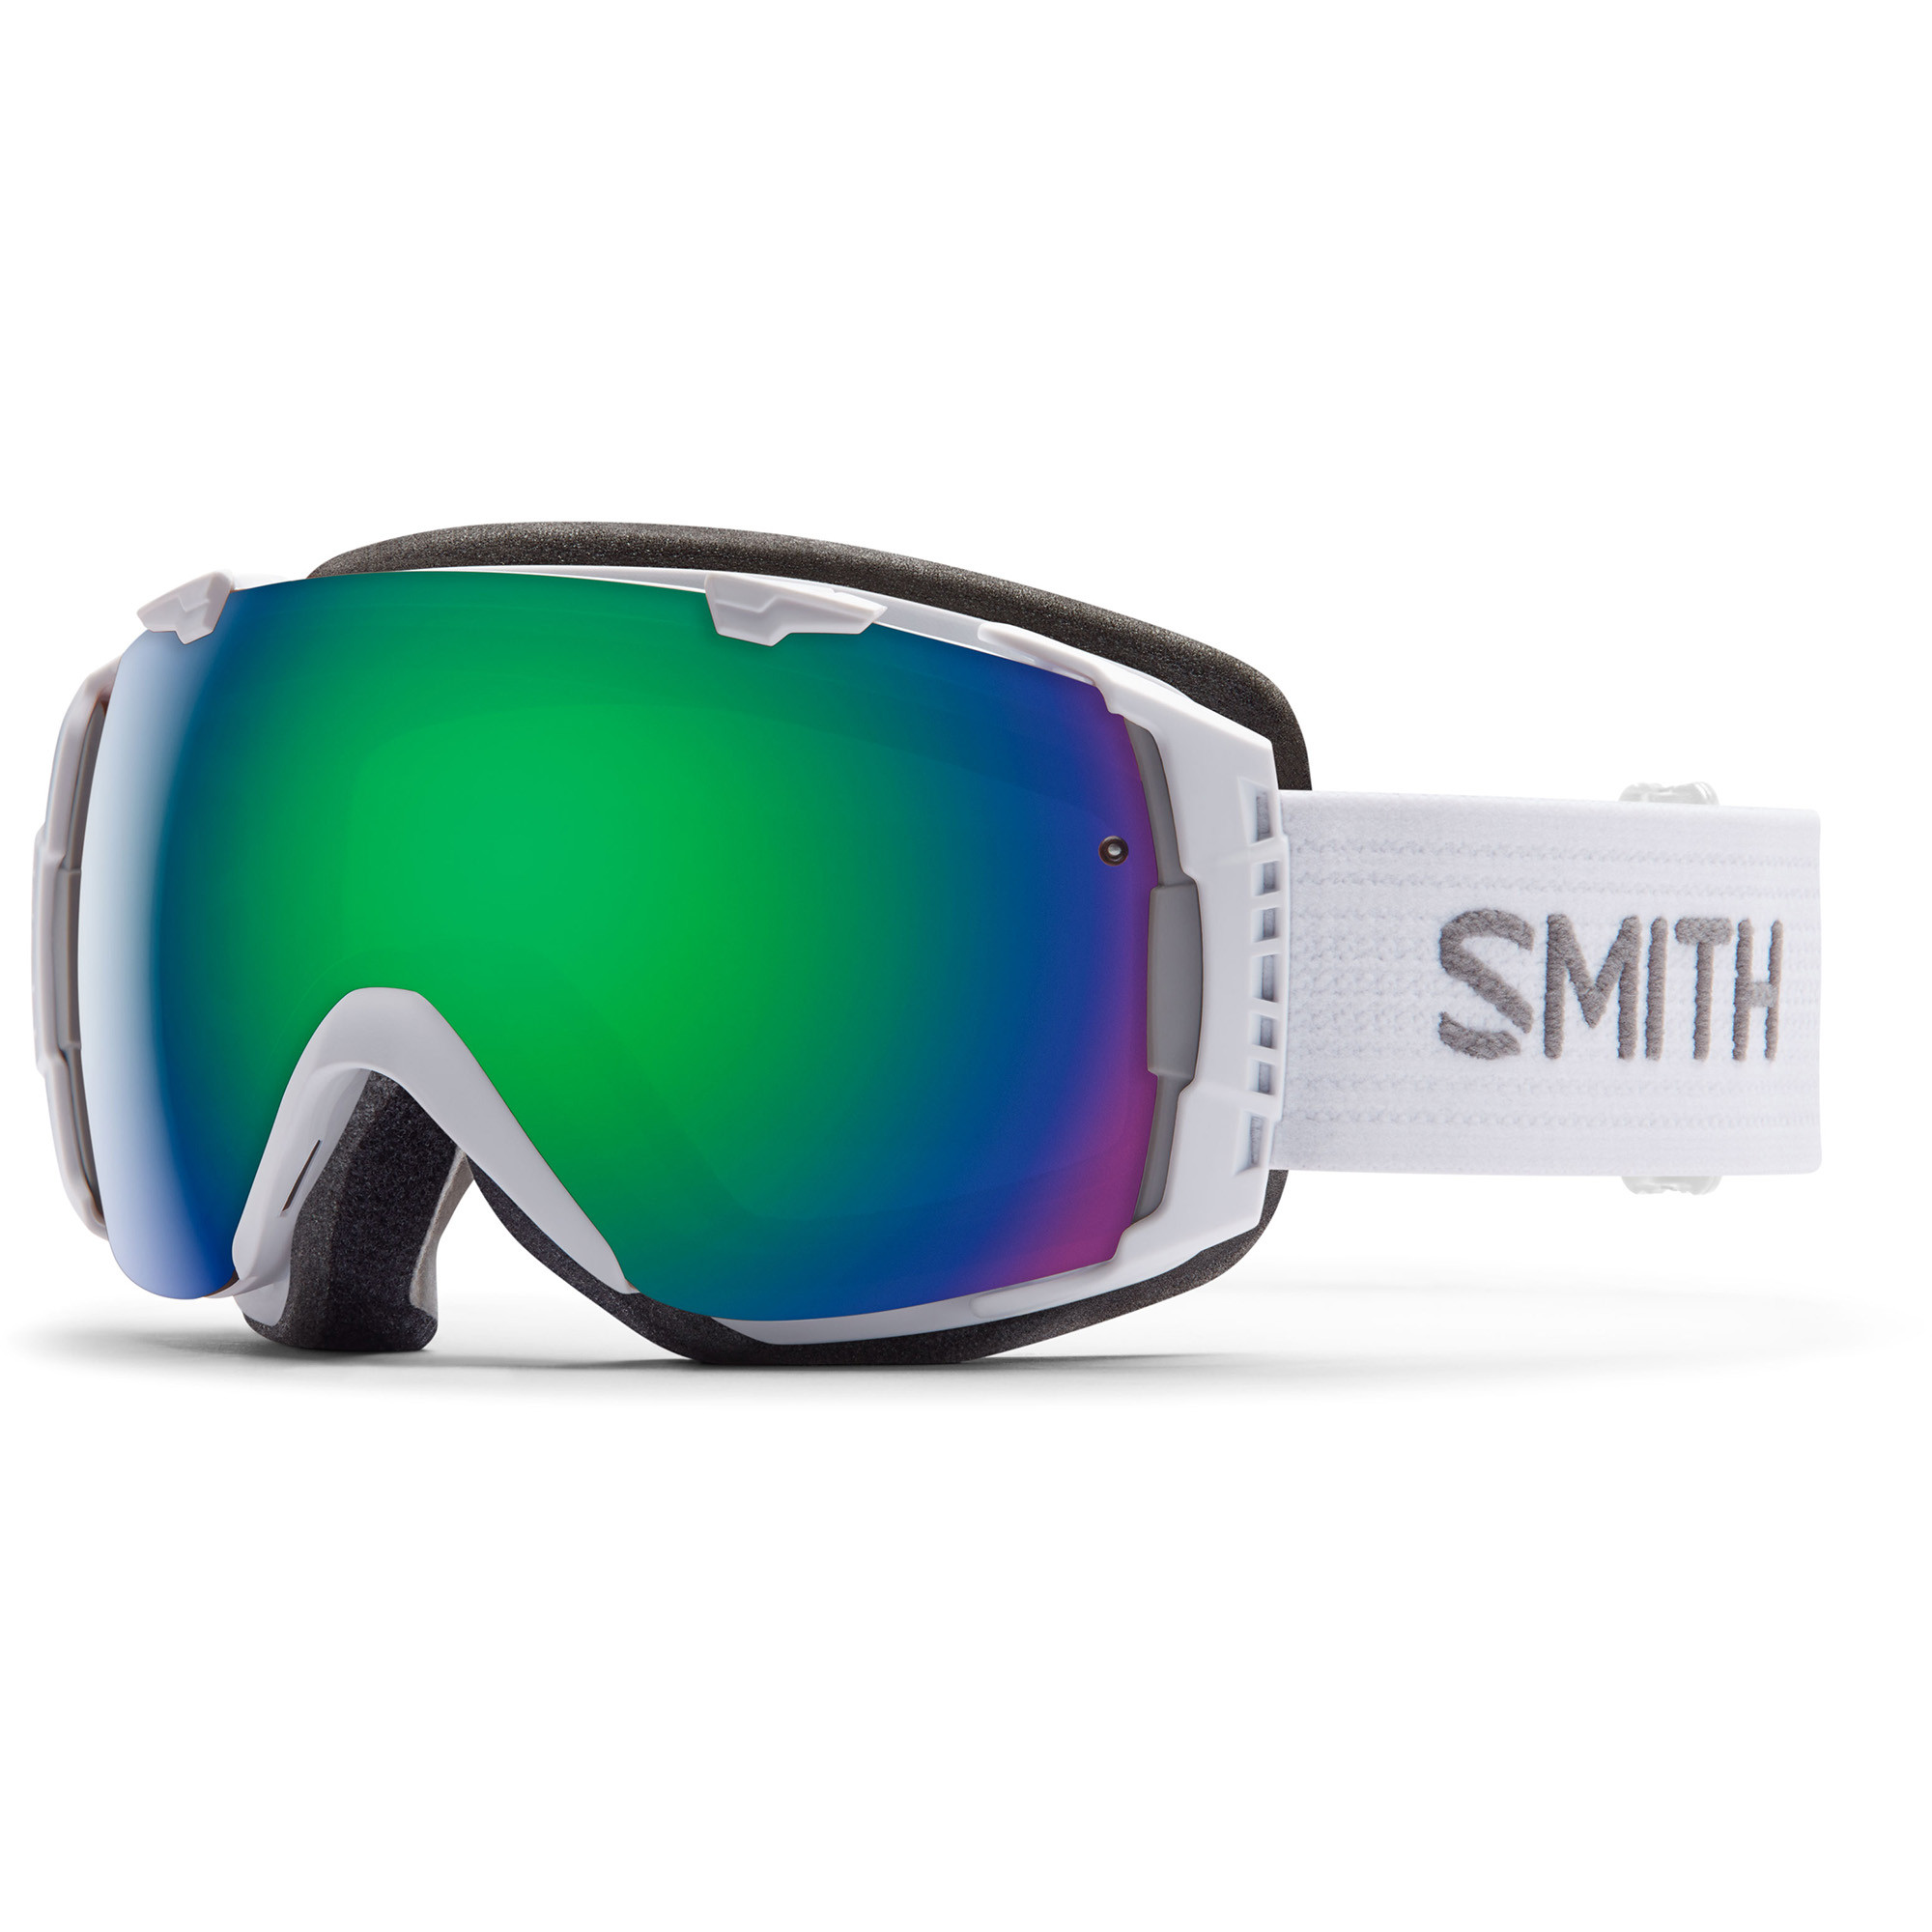 masque de ski snow smith optics i o blanc homme pas cher. Black Bedroom Furniture Sets. Home Design Ideas